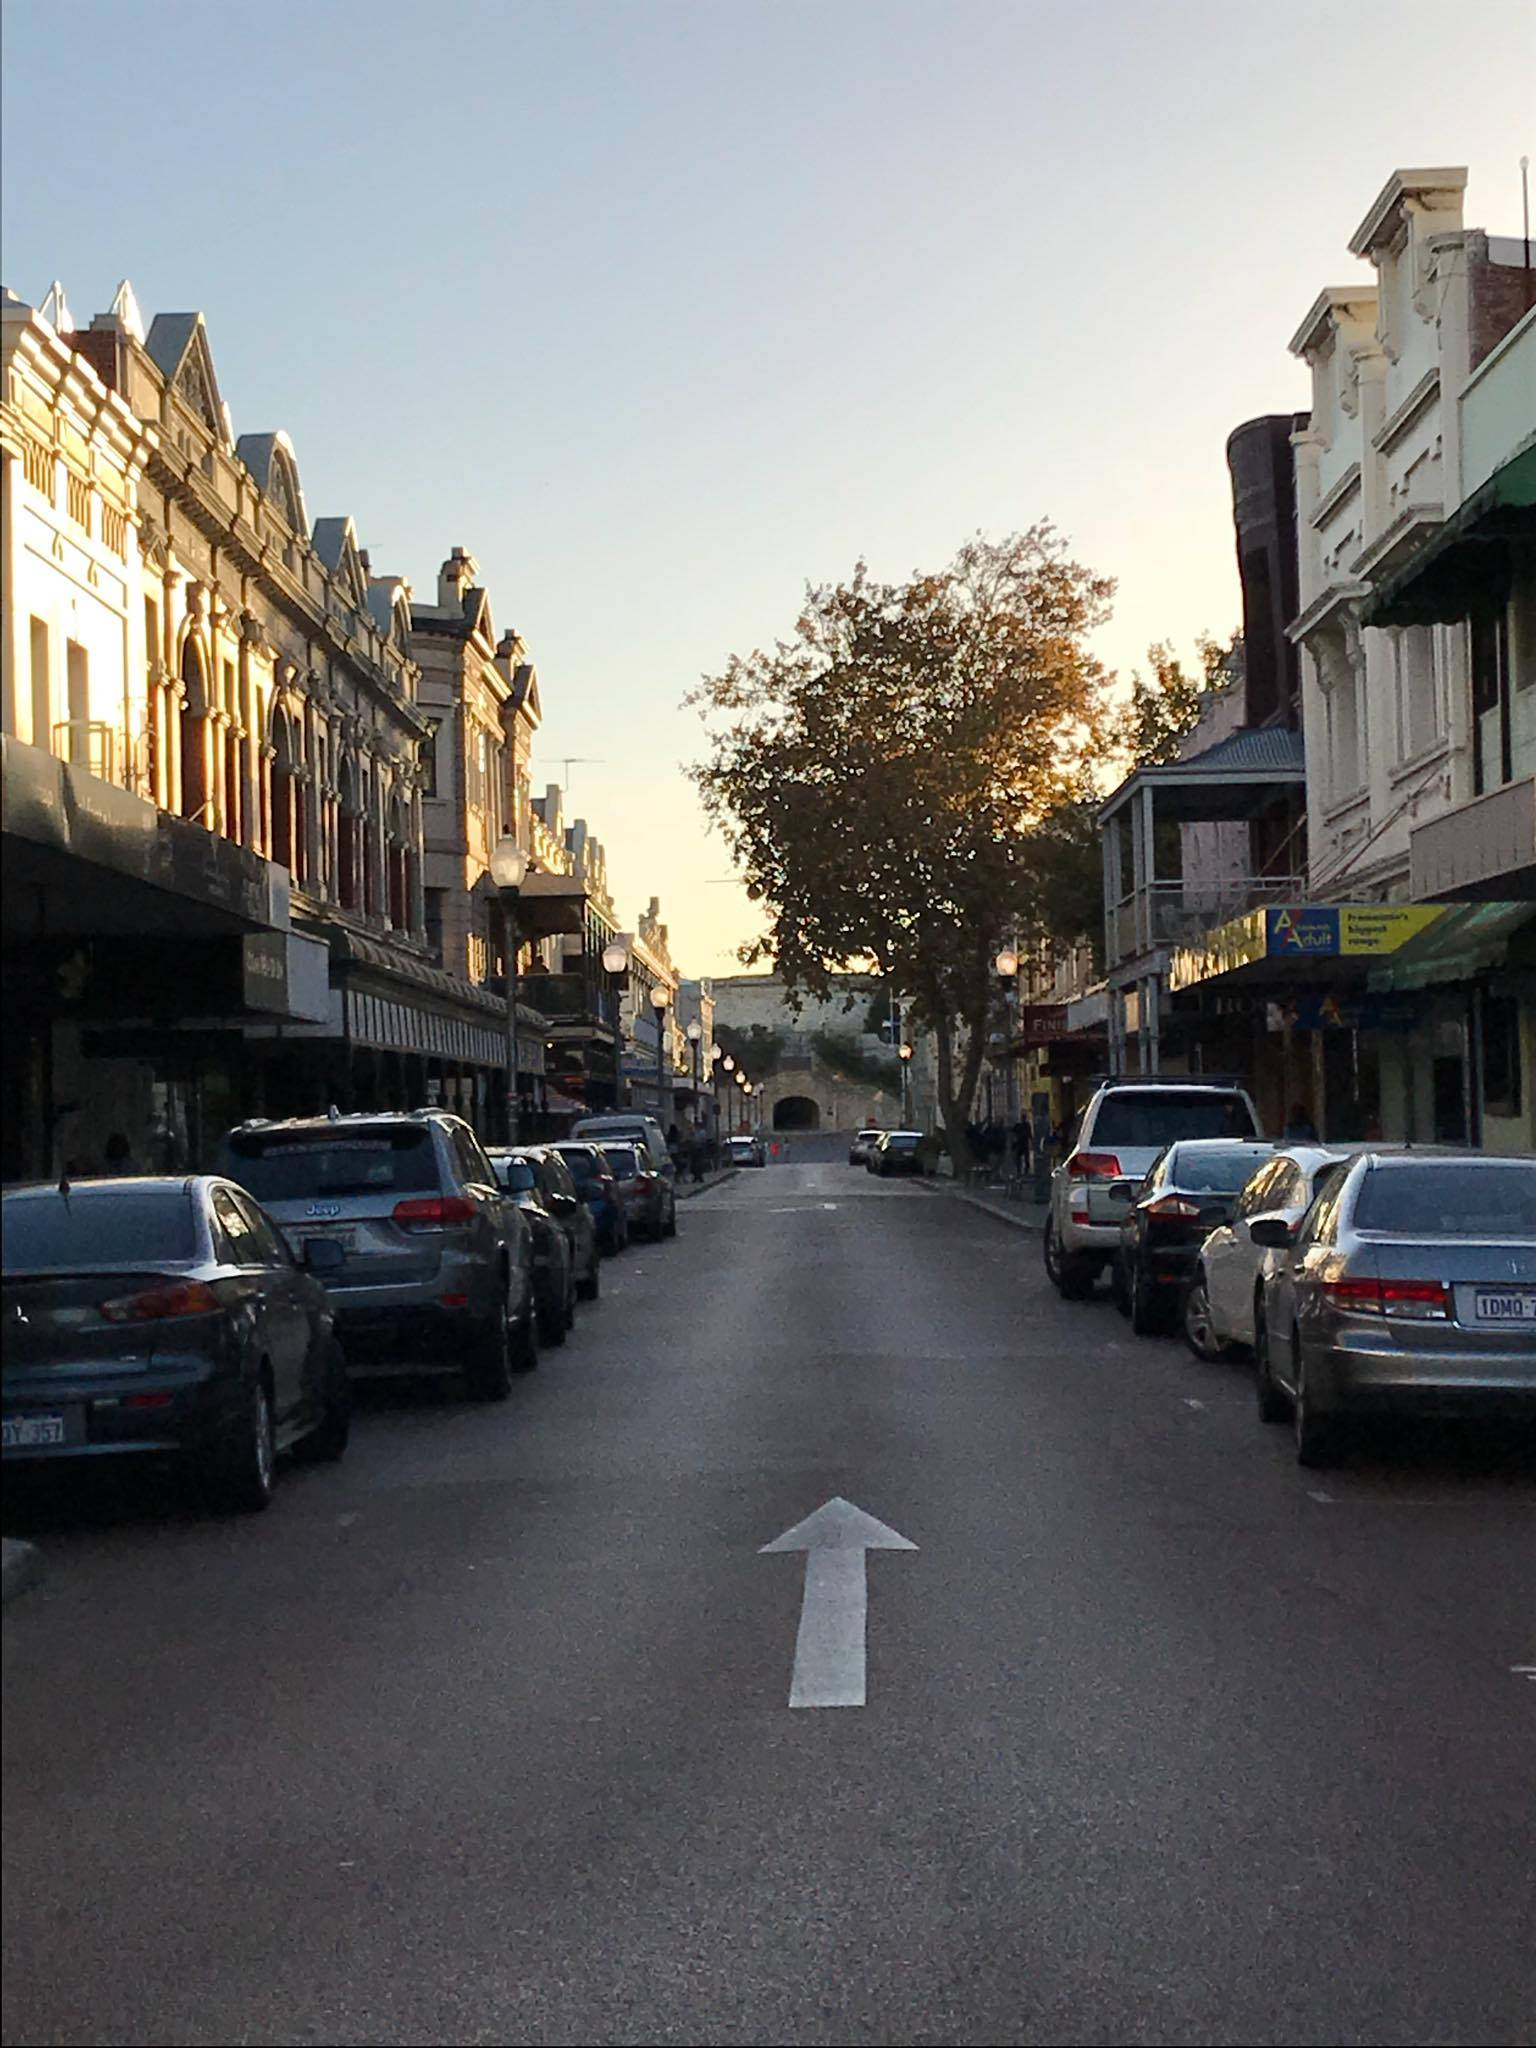 fremantle in perth is a great thing to do